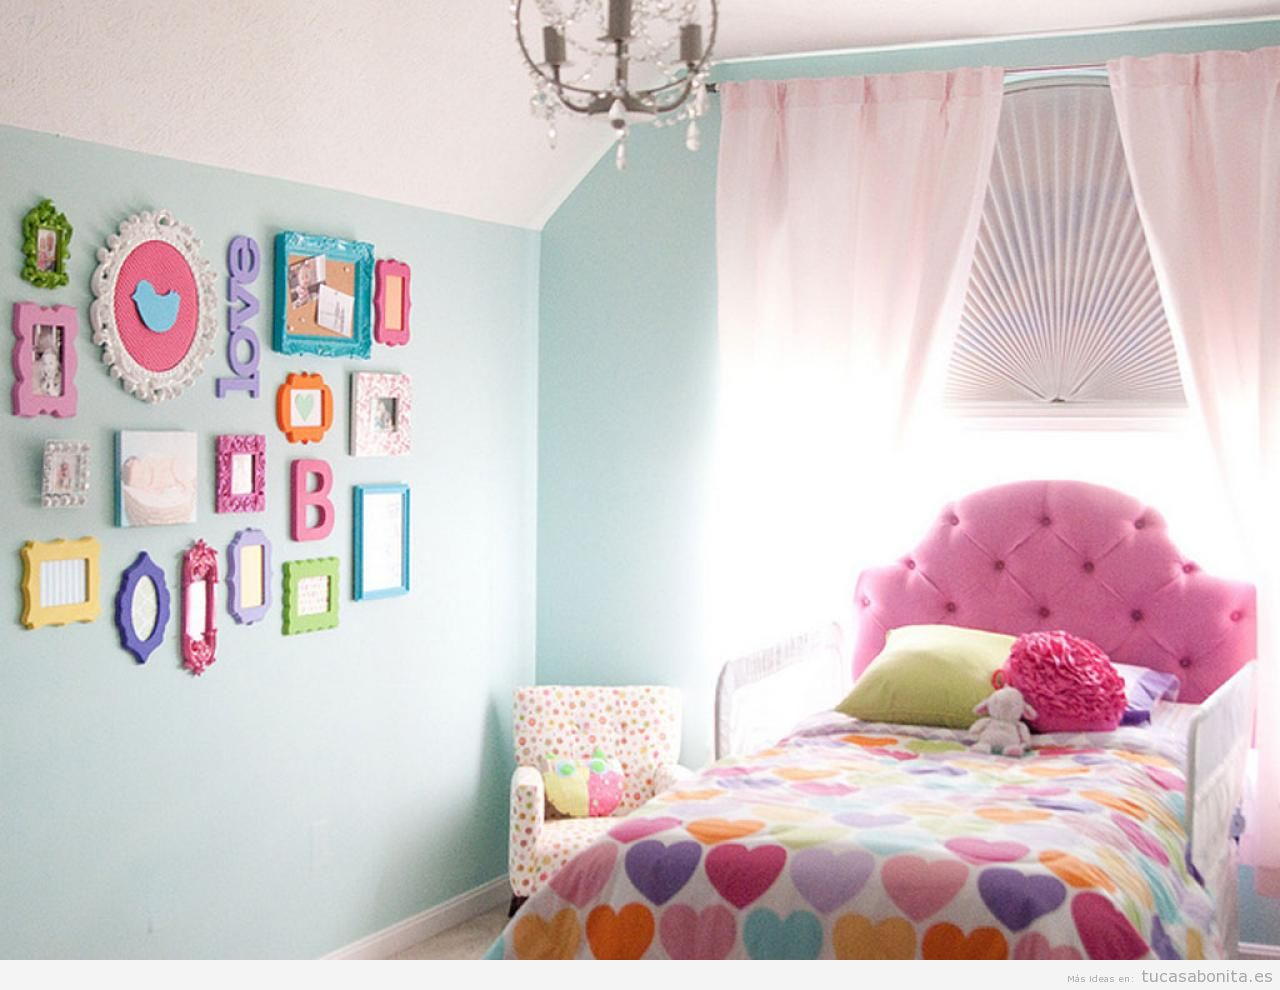 Ideas Para Decorar Pared Cabecero Dormitorio Ideas Para Decorar Una Habitación De Bebé Y De Niño Con